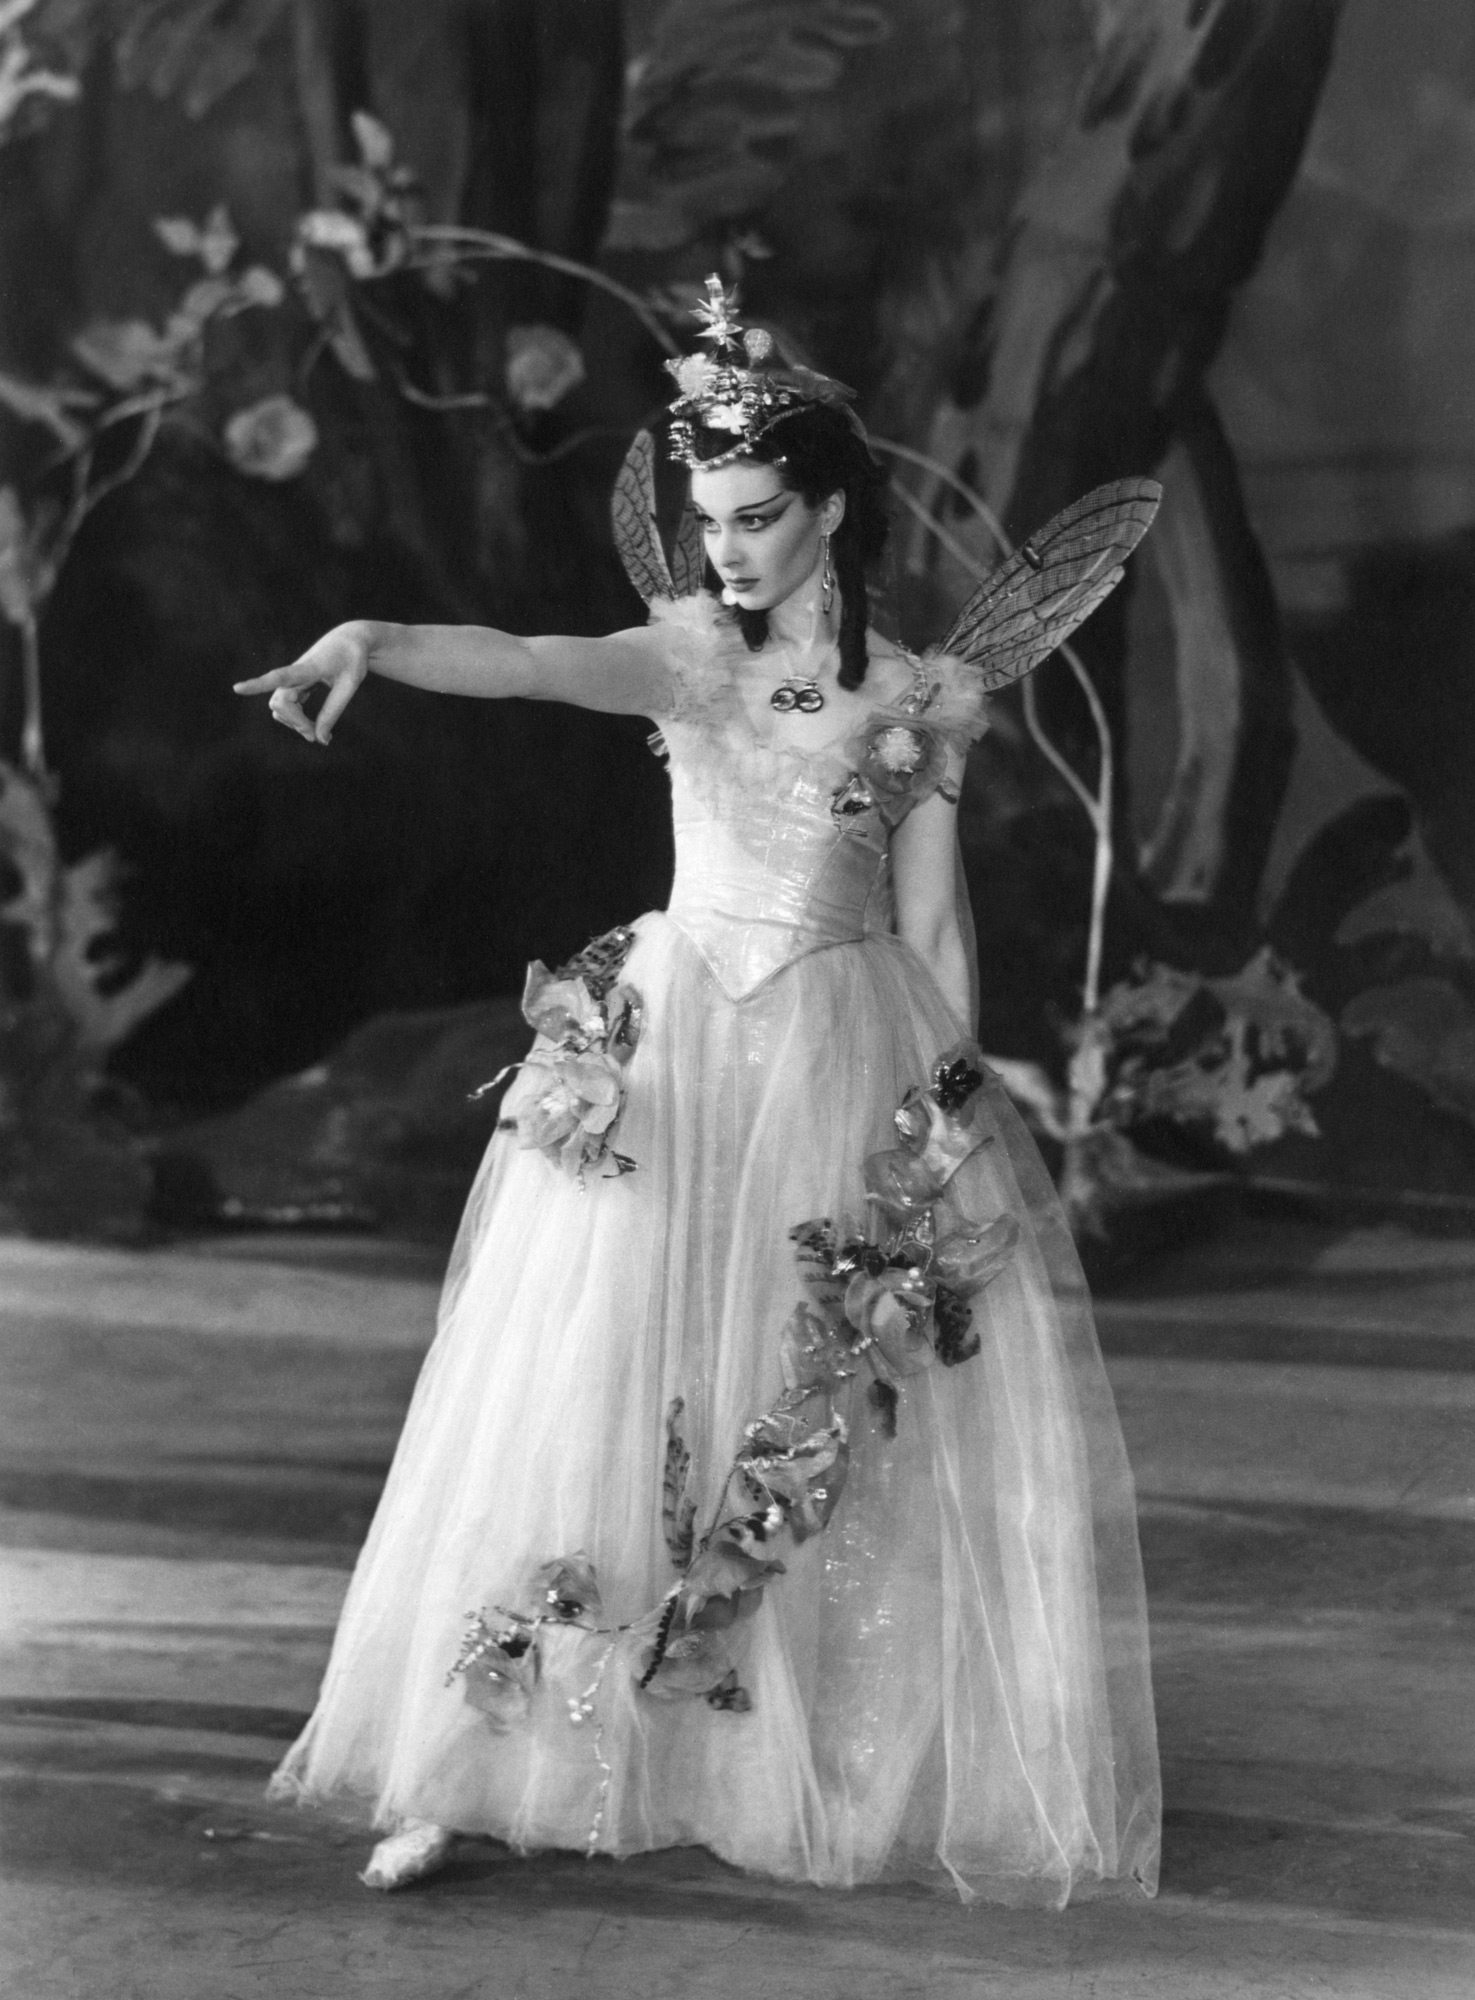 Photograph of Vivien Leigh as Titania from A Midsummer Night's Dream